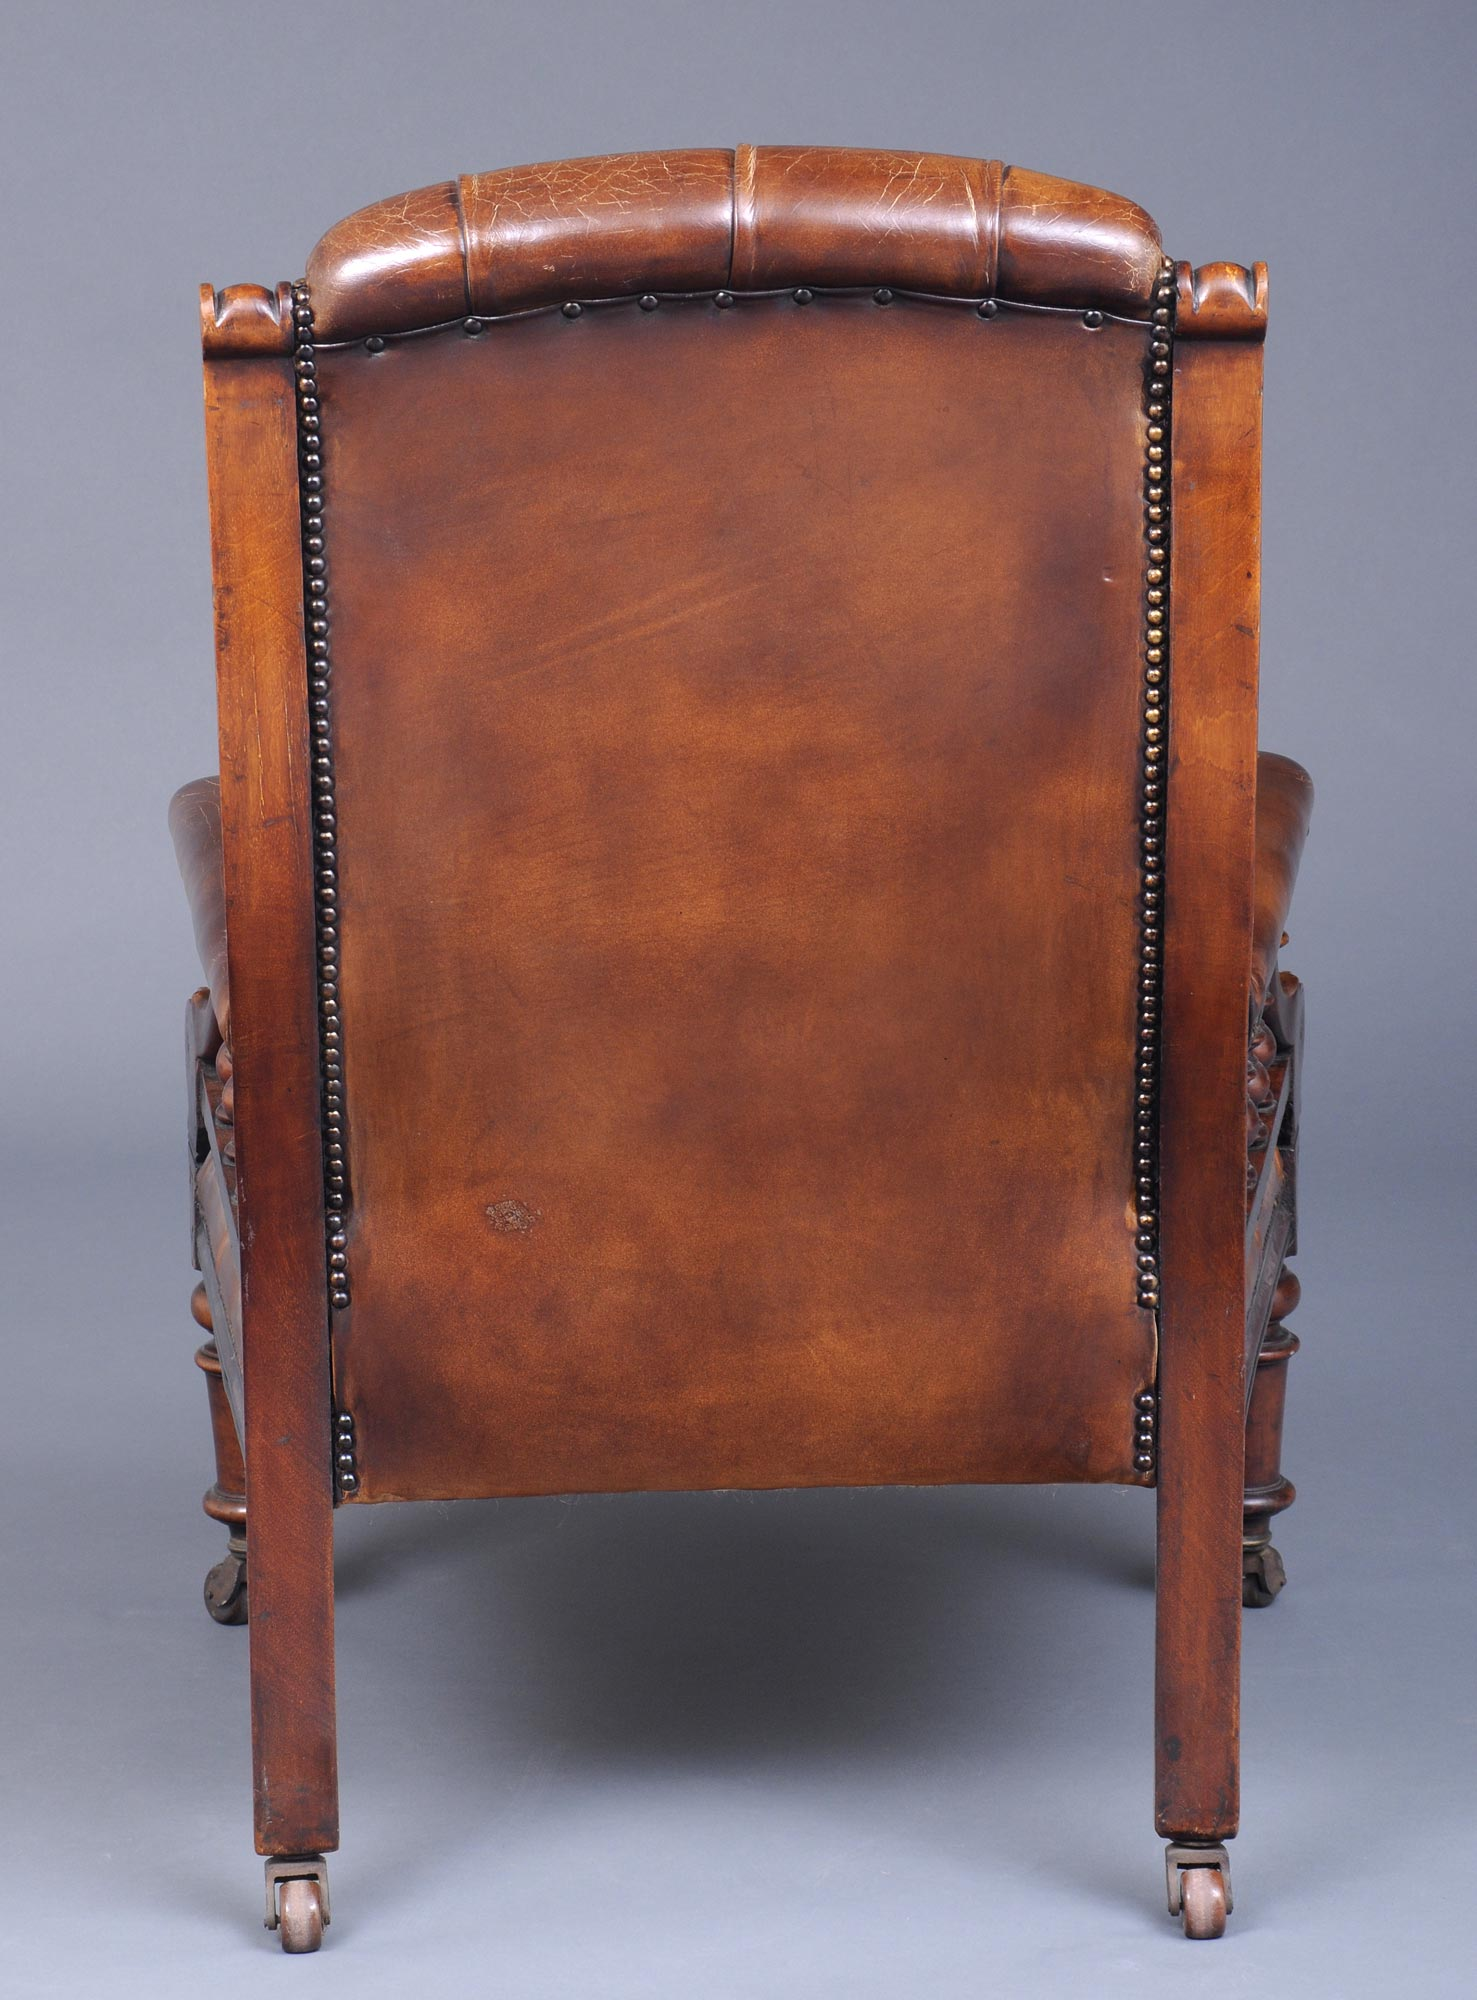 English Antique Victorian Mahogany and Leather Library Armchair  Circa  1860Antique Library Chairs   Antique English Mahogany Library Armchair. Antique Library Armchairs. Home Design Ideas